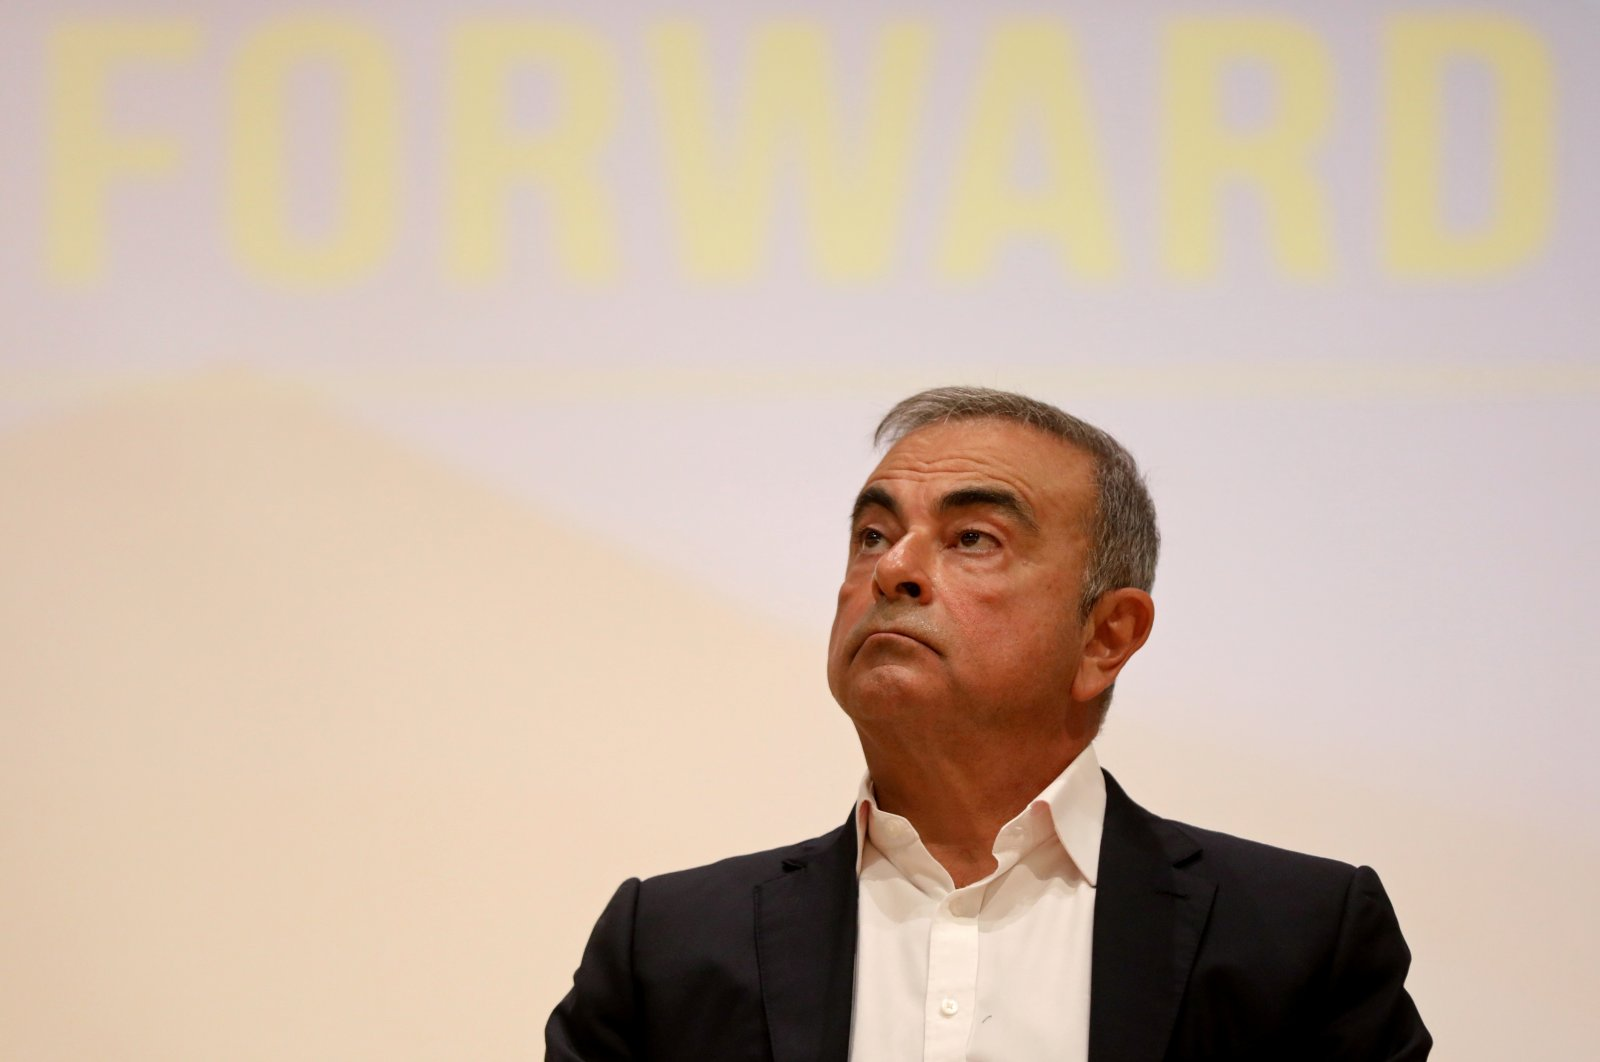 Carlos Ghosn, the former Nissan and Renault chief executive, looks on during a news conference at the Holy Spirit University of Kaslik, in Jounieh, Lebanon, Sept. 29, 2020. (Reuters Photo)